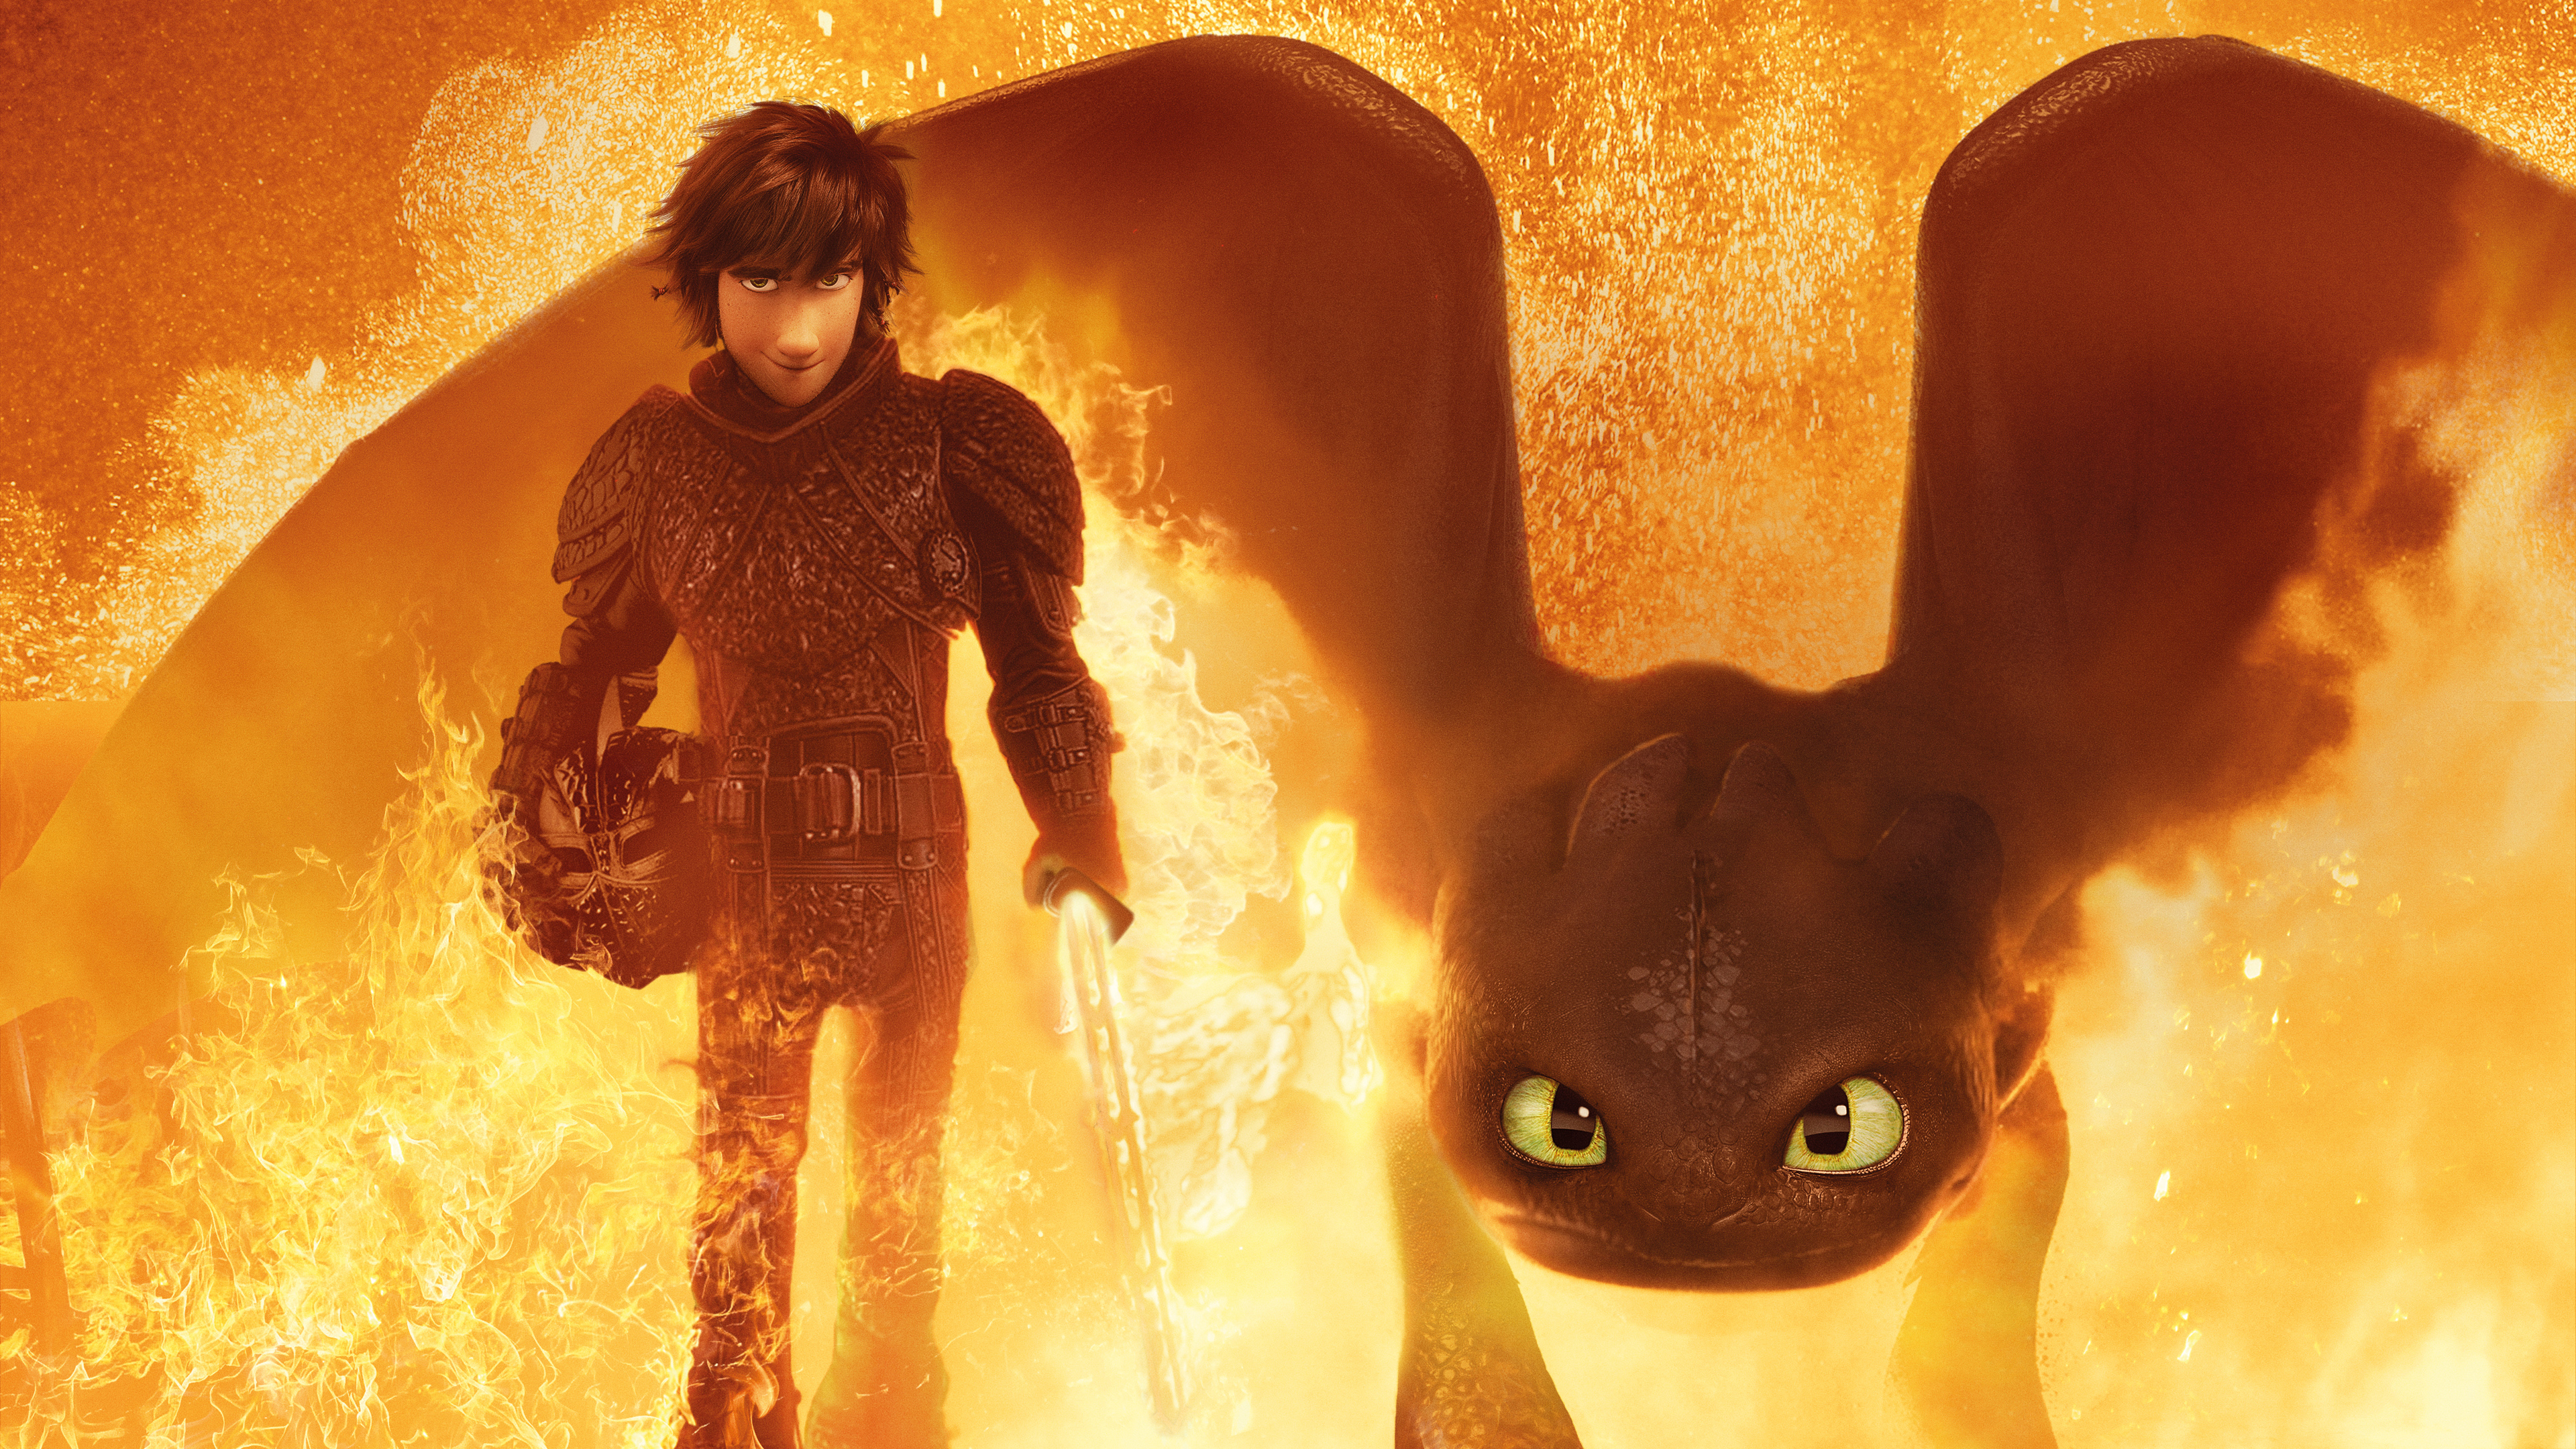 how to train your dragon the hidden world 4k 2019 1548528220 - How To Train Your Dragon The Hidden World 4k 2019 - night fury wallpapers, movies wallpapers, how to train your dragon wallpapers, how to train your dragon the hidden world wallpapers, how to train your dragon 3 wallpapers, hd-wallpapers, dragon wallpapers, animated movies wallpapers, 5k wallpapers, 4k-wallpapers, 2019 movies wallpapers